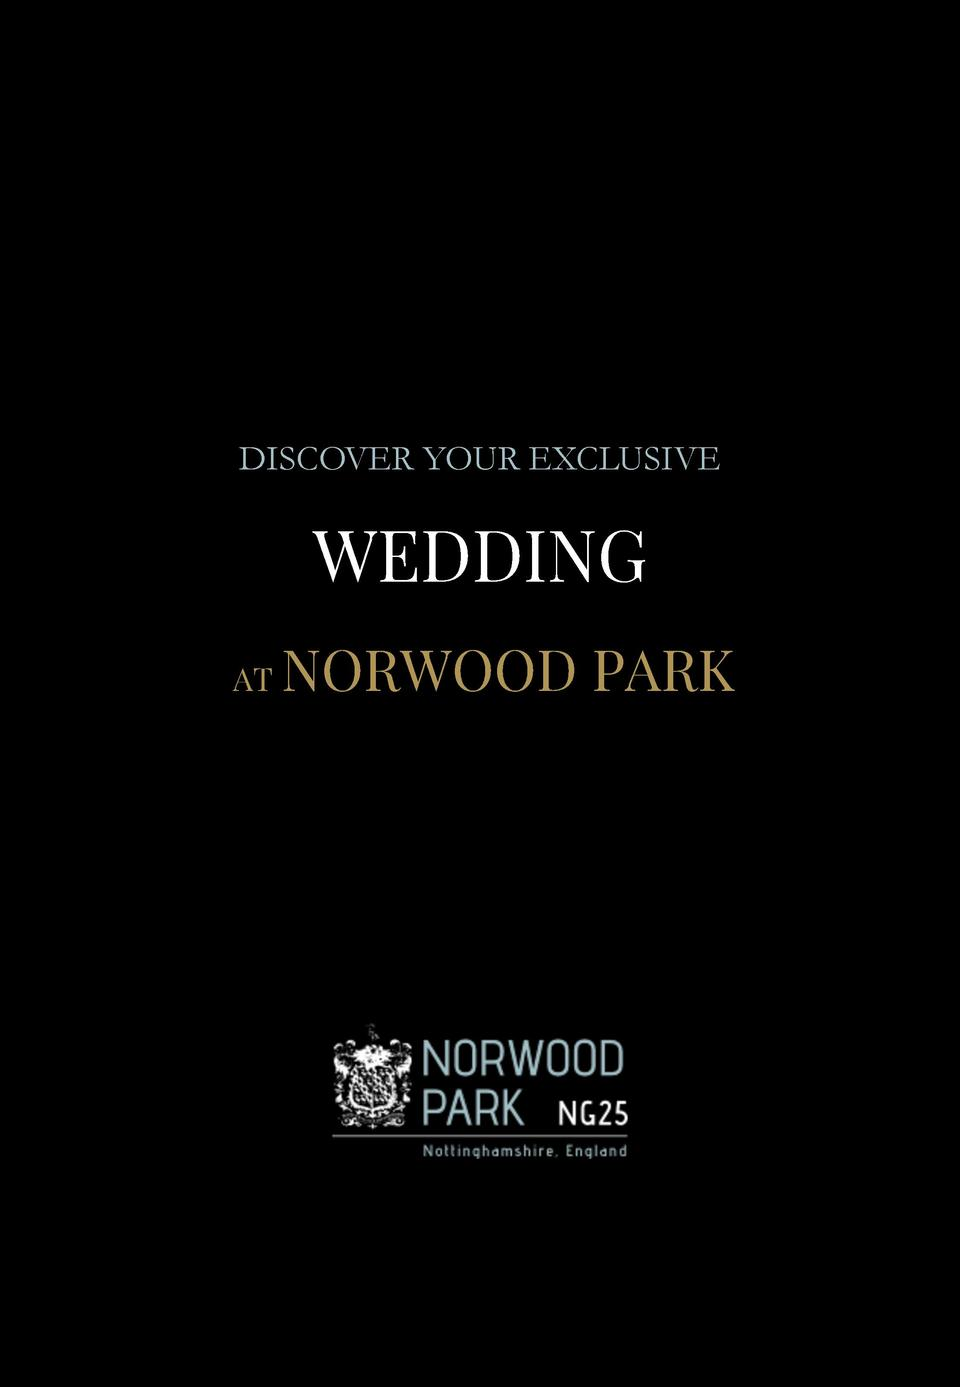 DISCOVER YOUR EXCLUSIVE  WEDDING AT  NORWOOD PARK